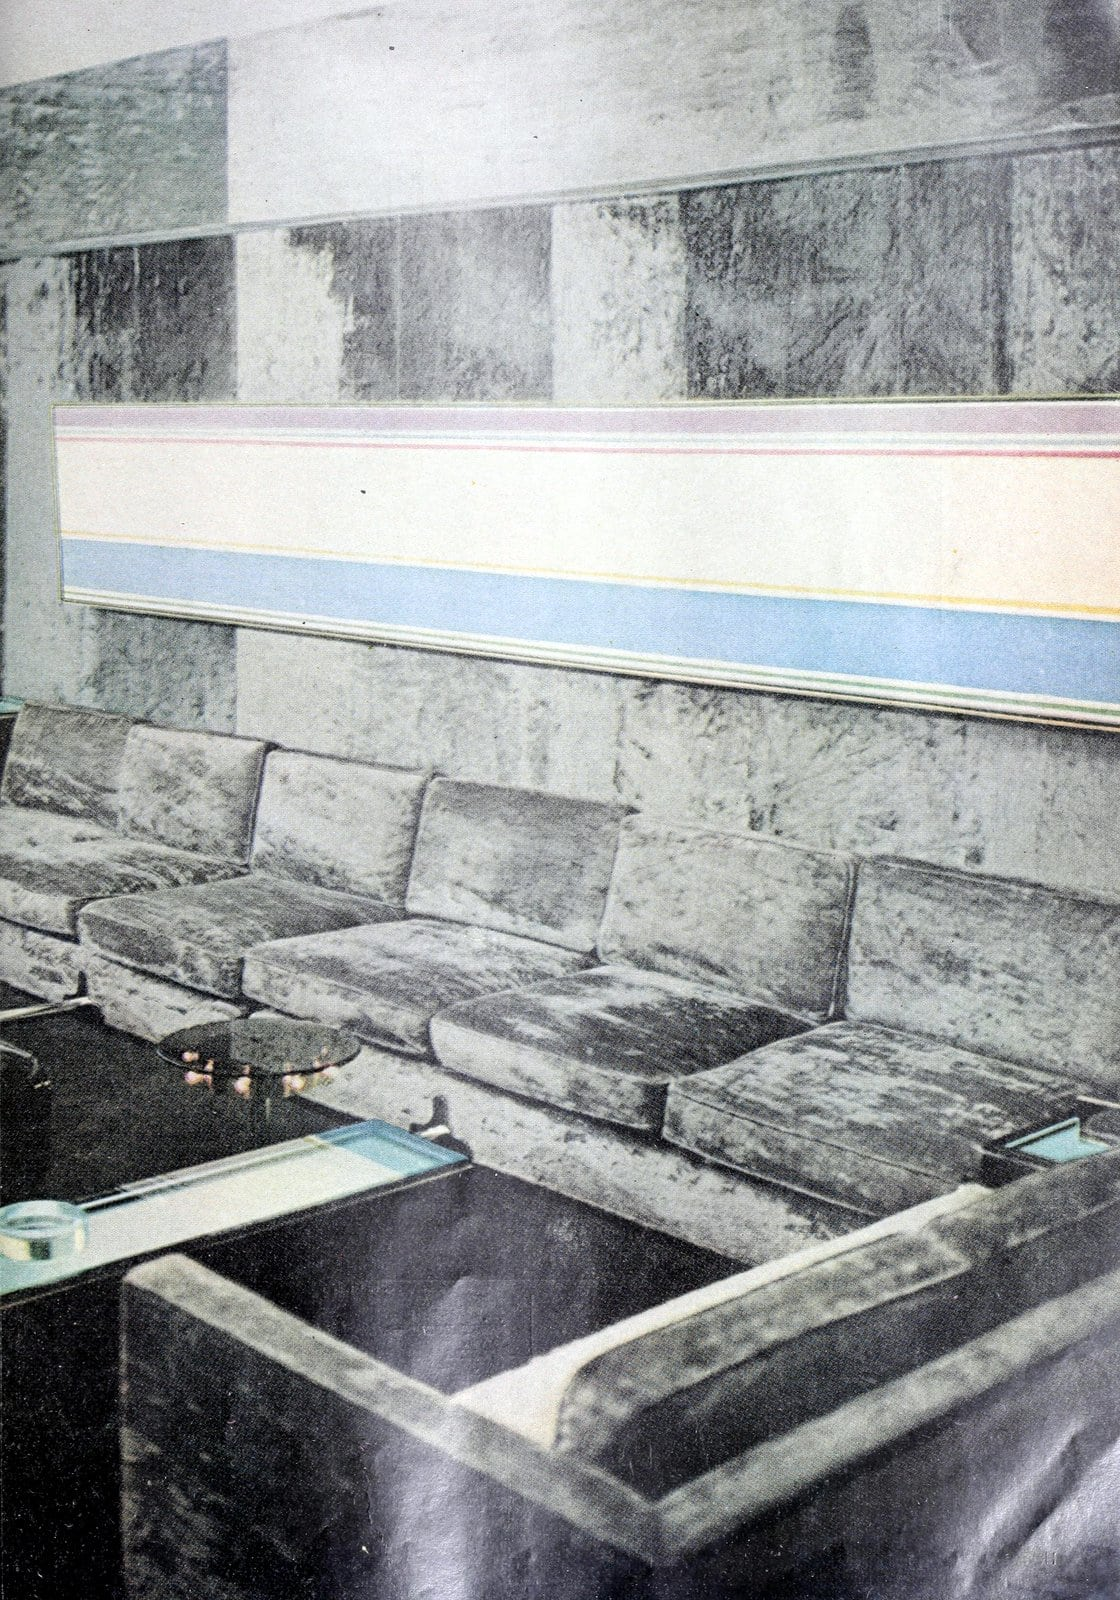 Vintage 1960s living room decor in shades of gray with a velvet sofa (1968)